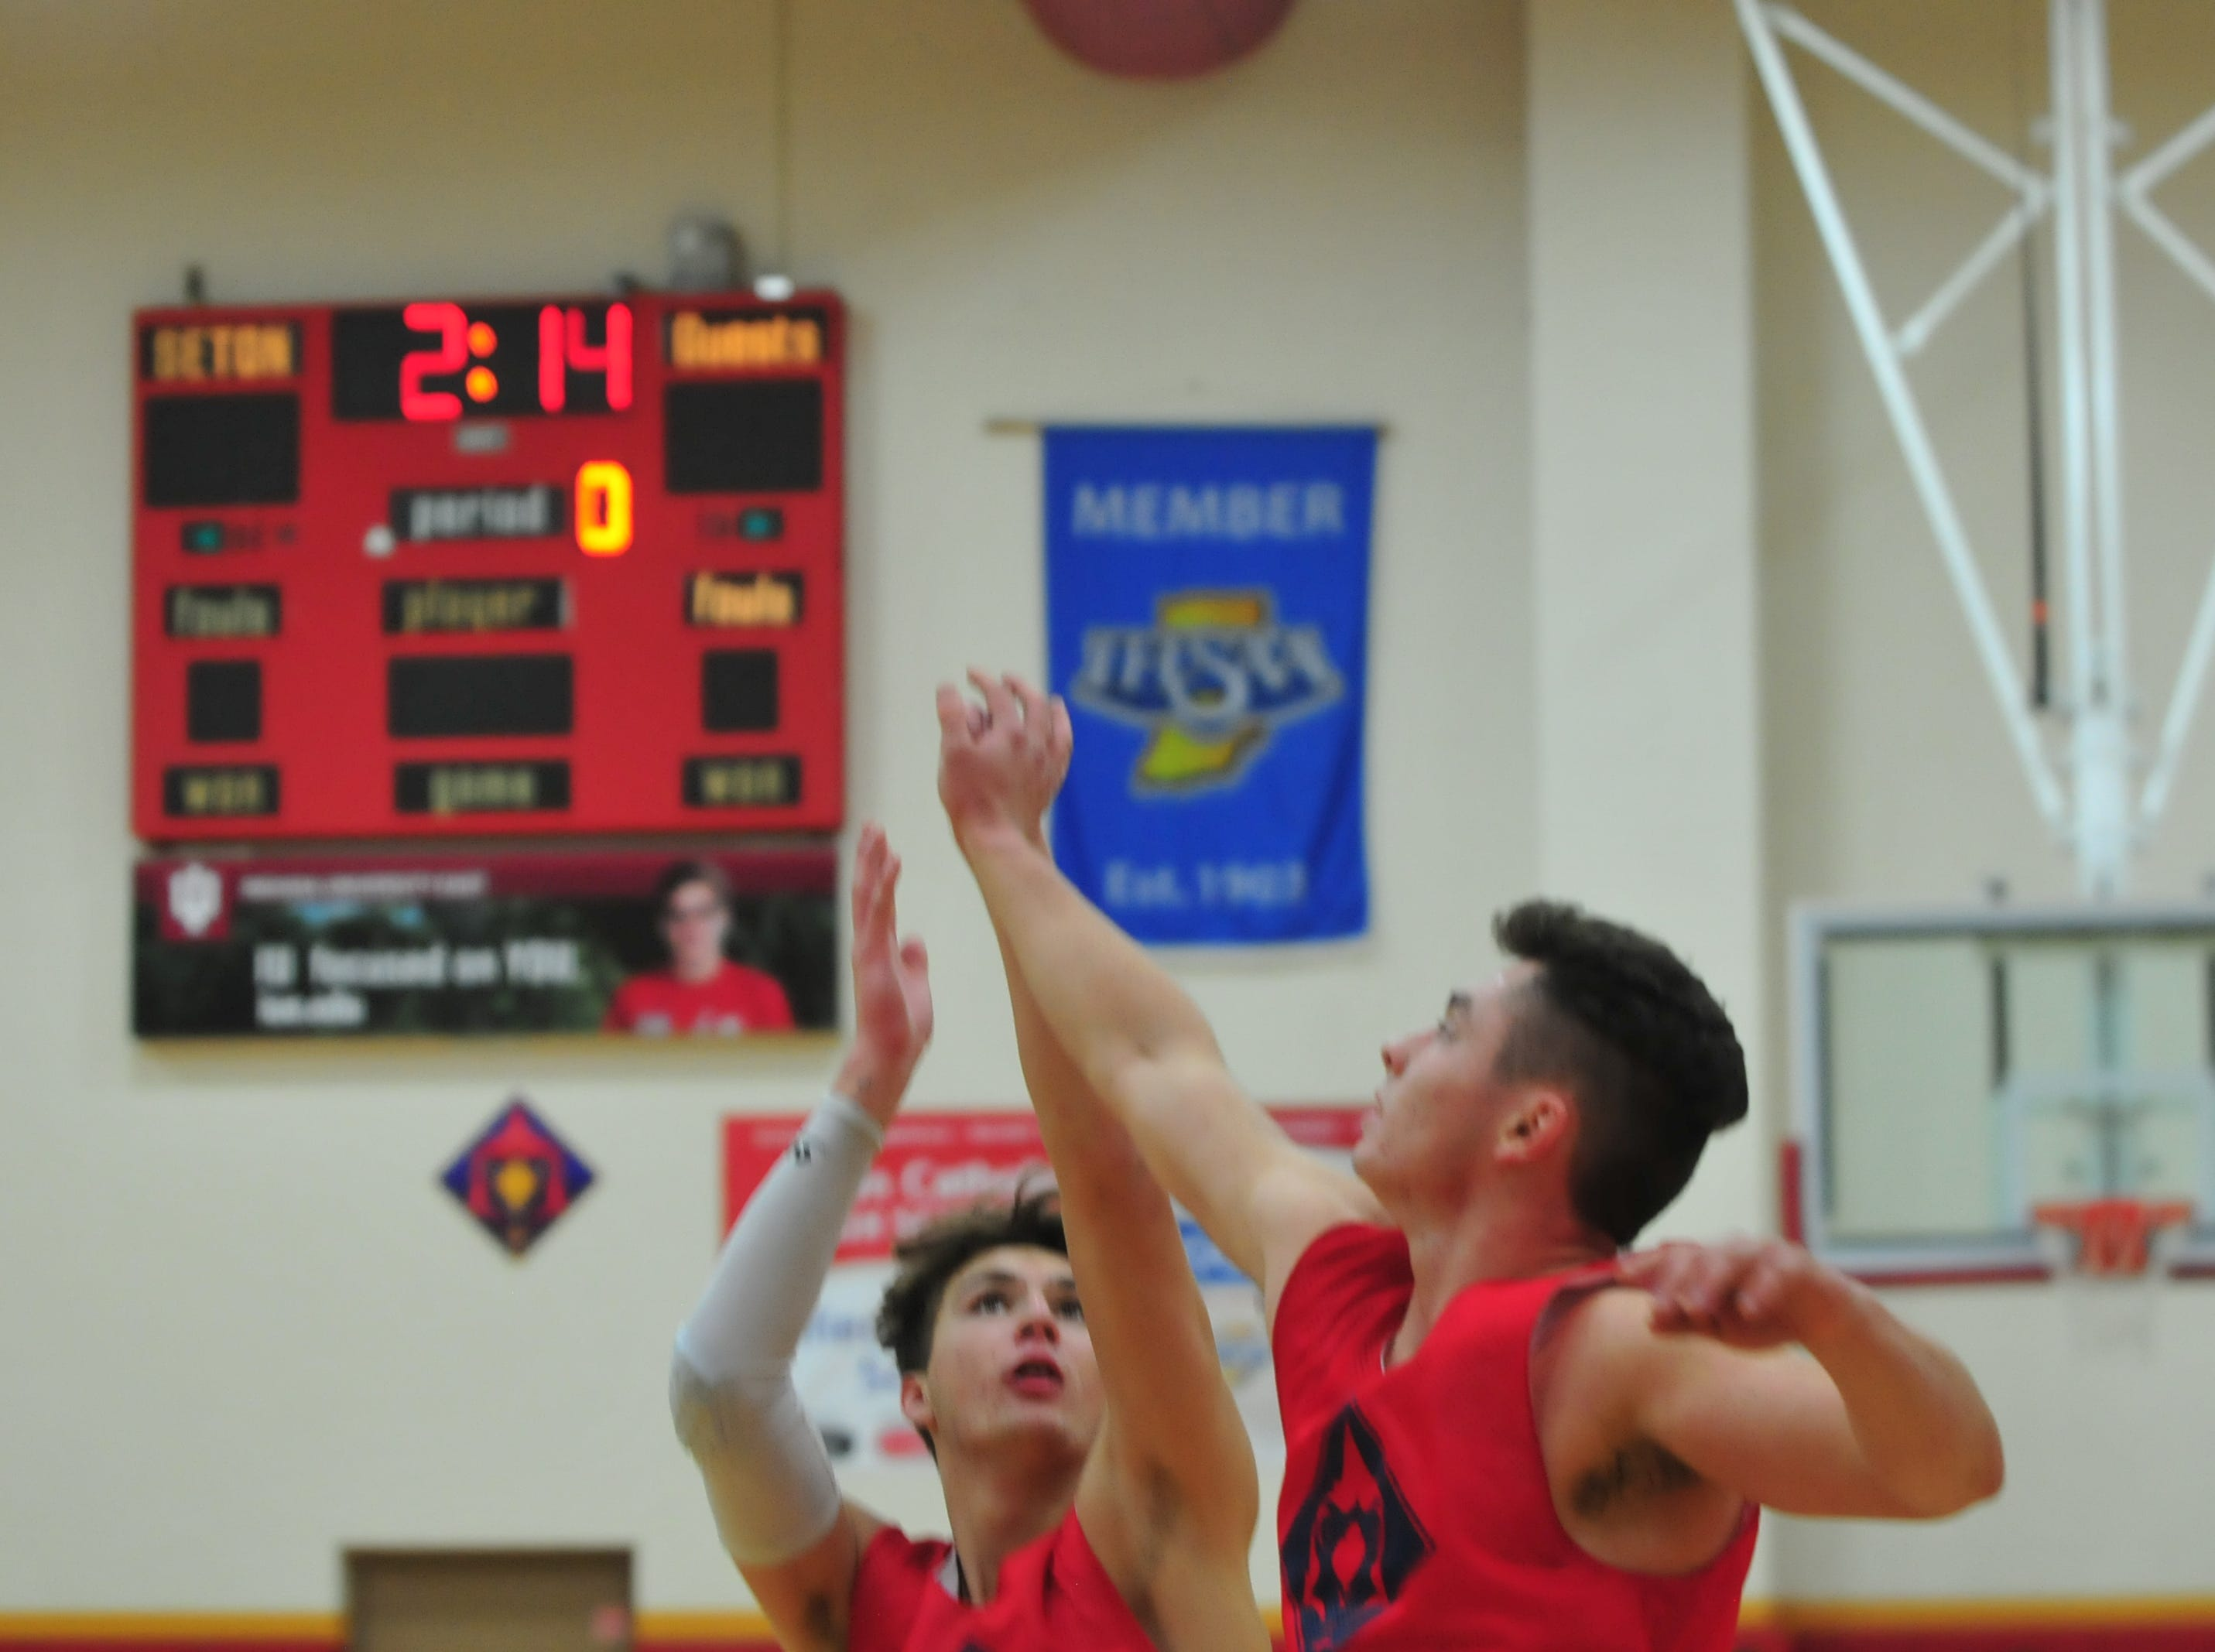 Seton Catholic sophomore Jake Moynihan takes a shot while being guarded by Trent Reichley during practice Wednesday, Nov. 28, 2018.